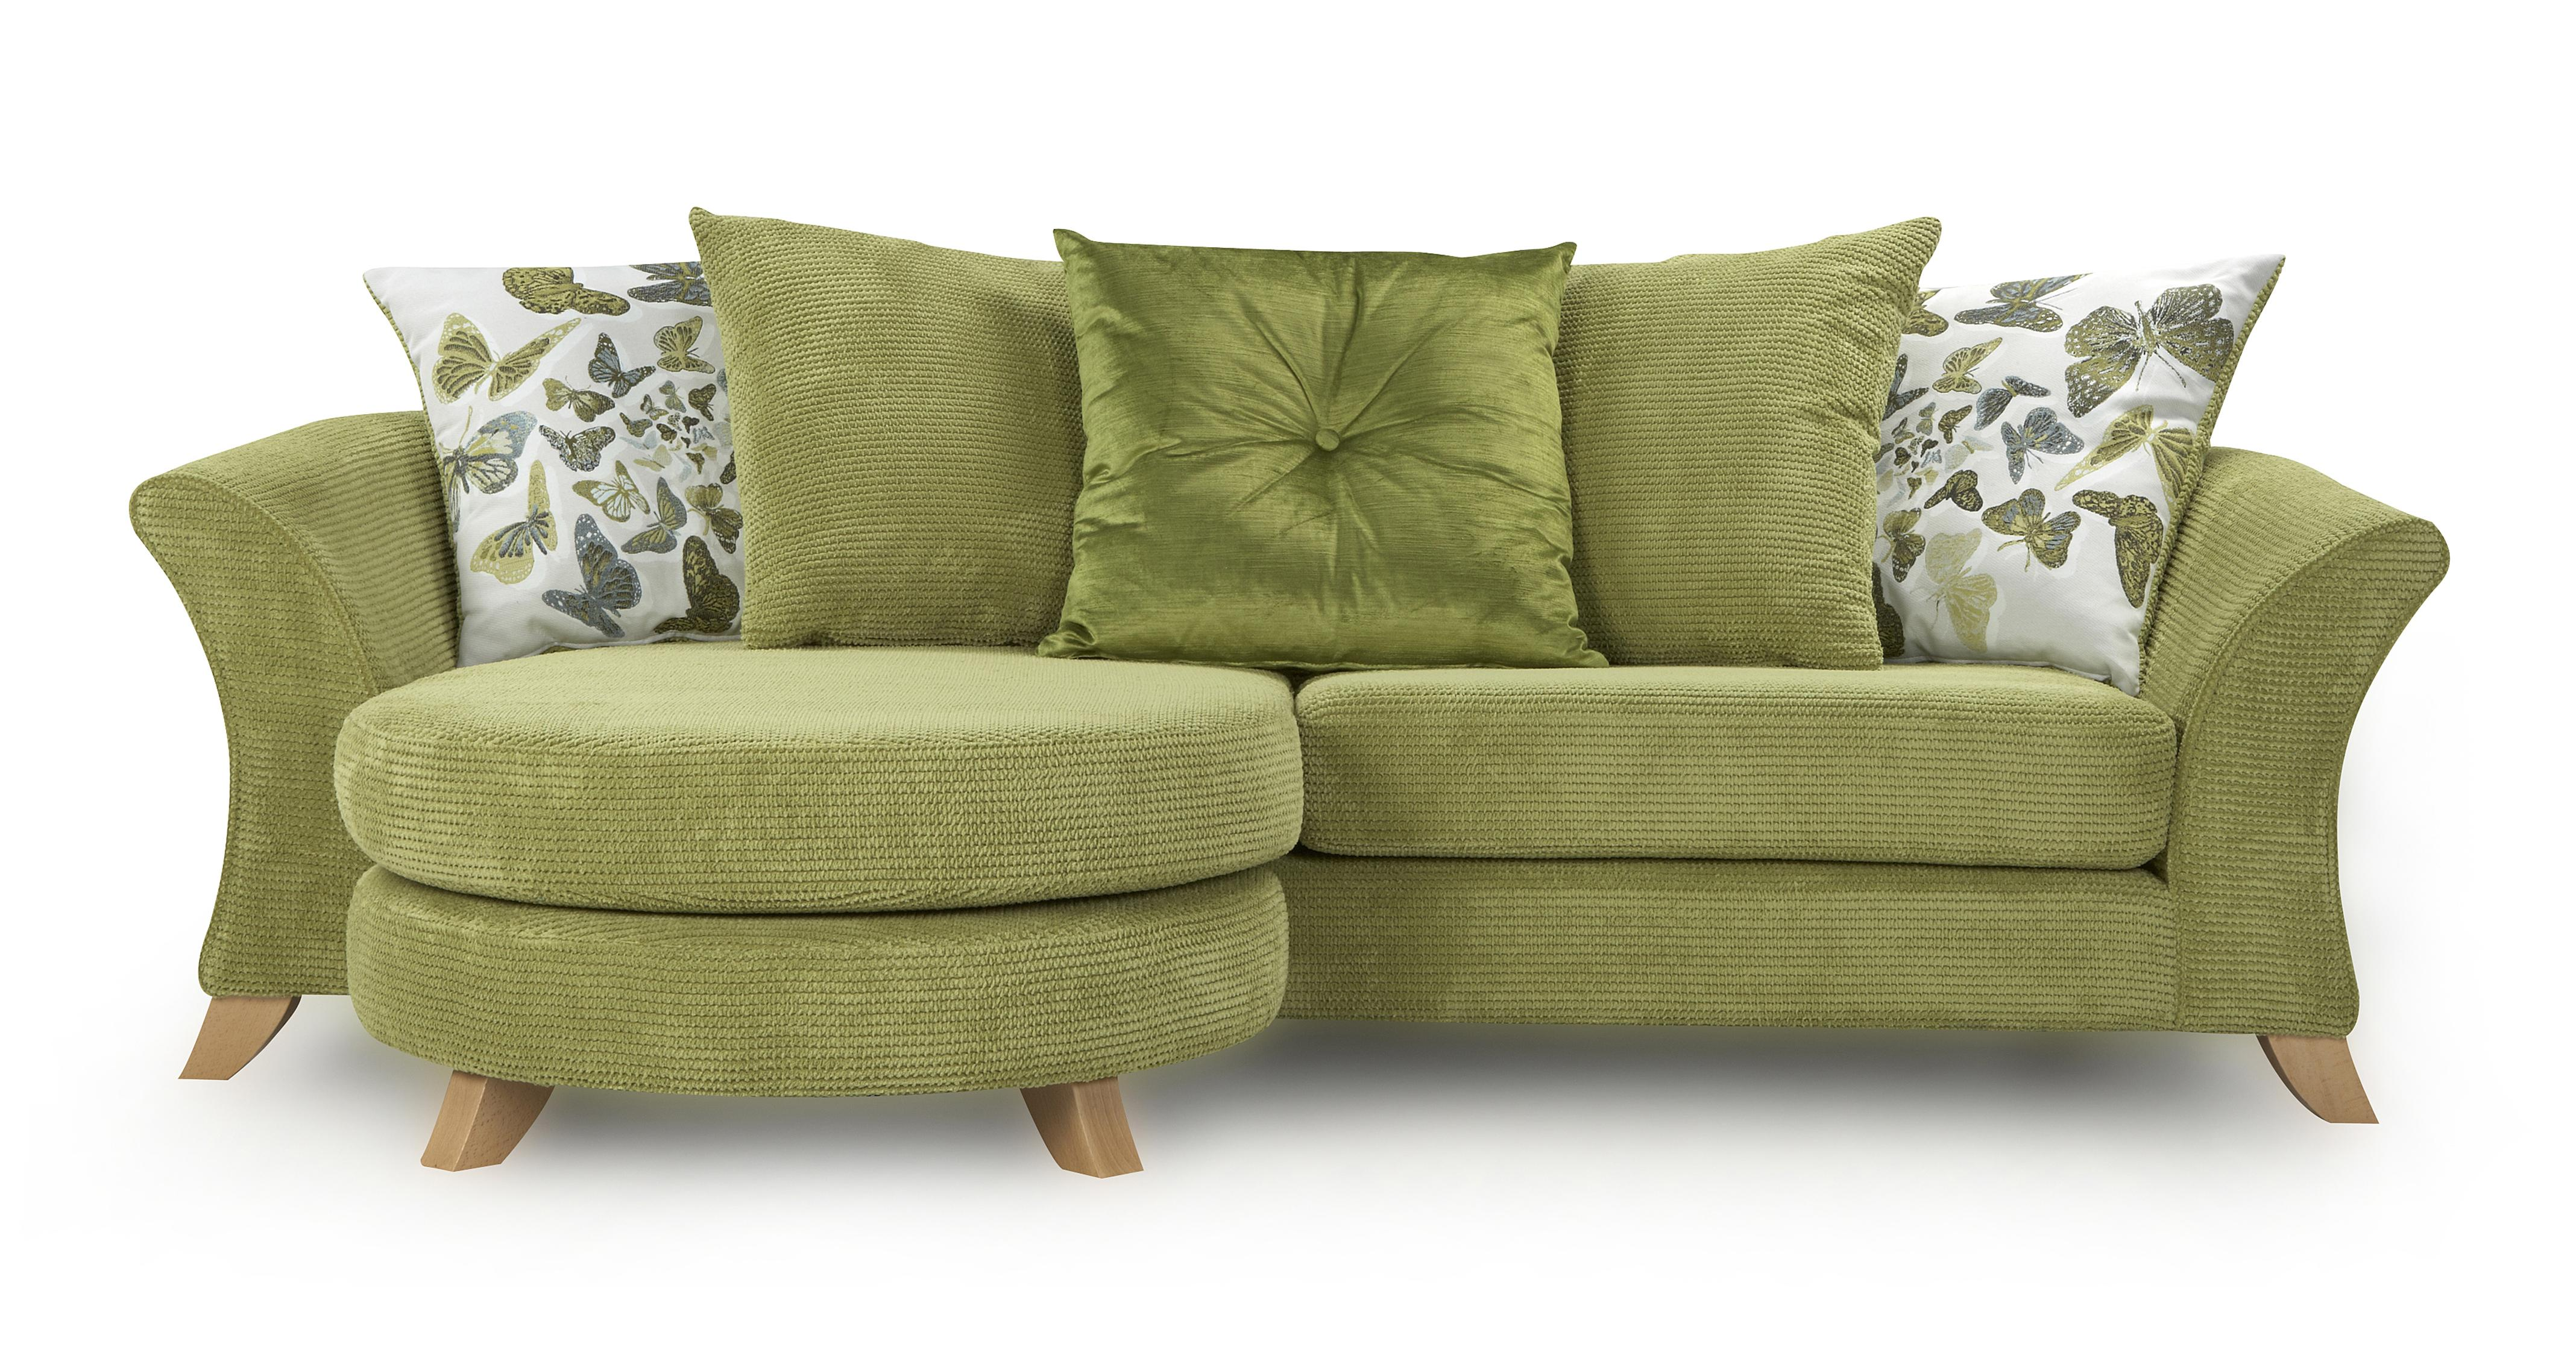 organic sofa uk removing pen marks from leather dfs escape set 4 seater lime green lounger accent